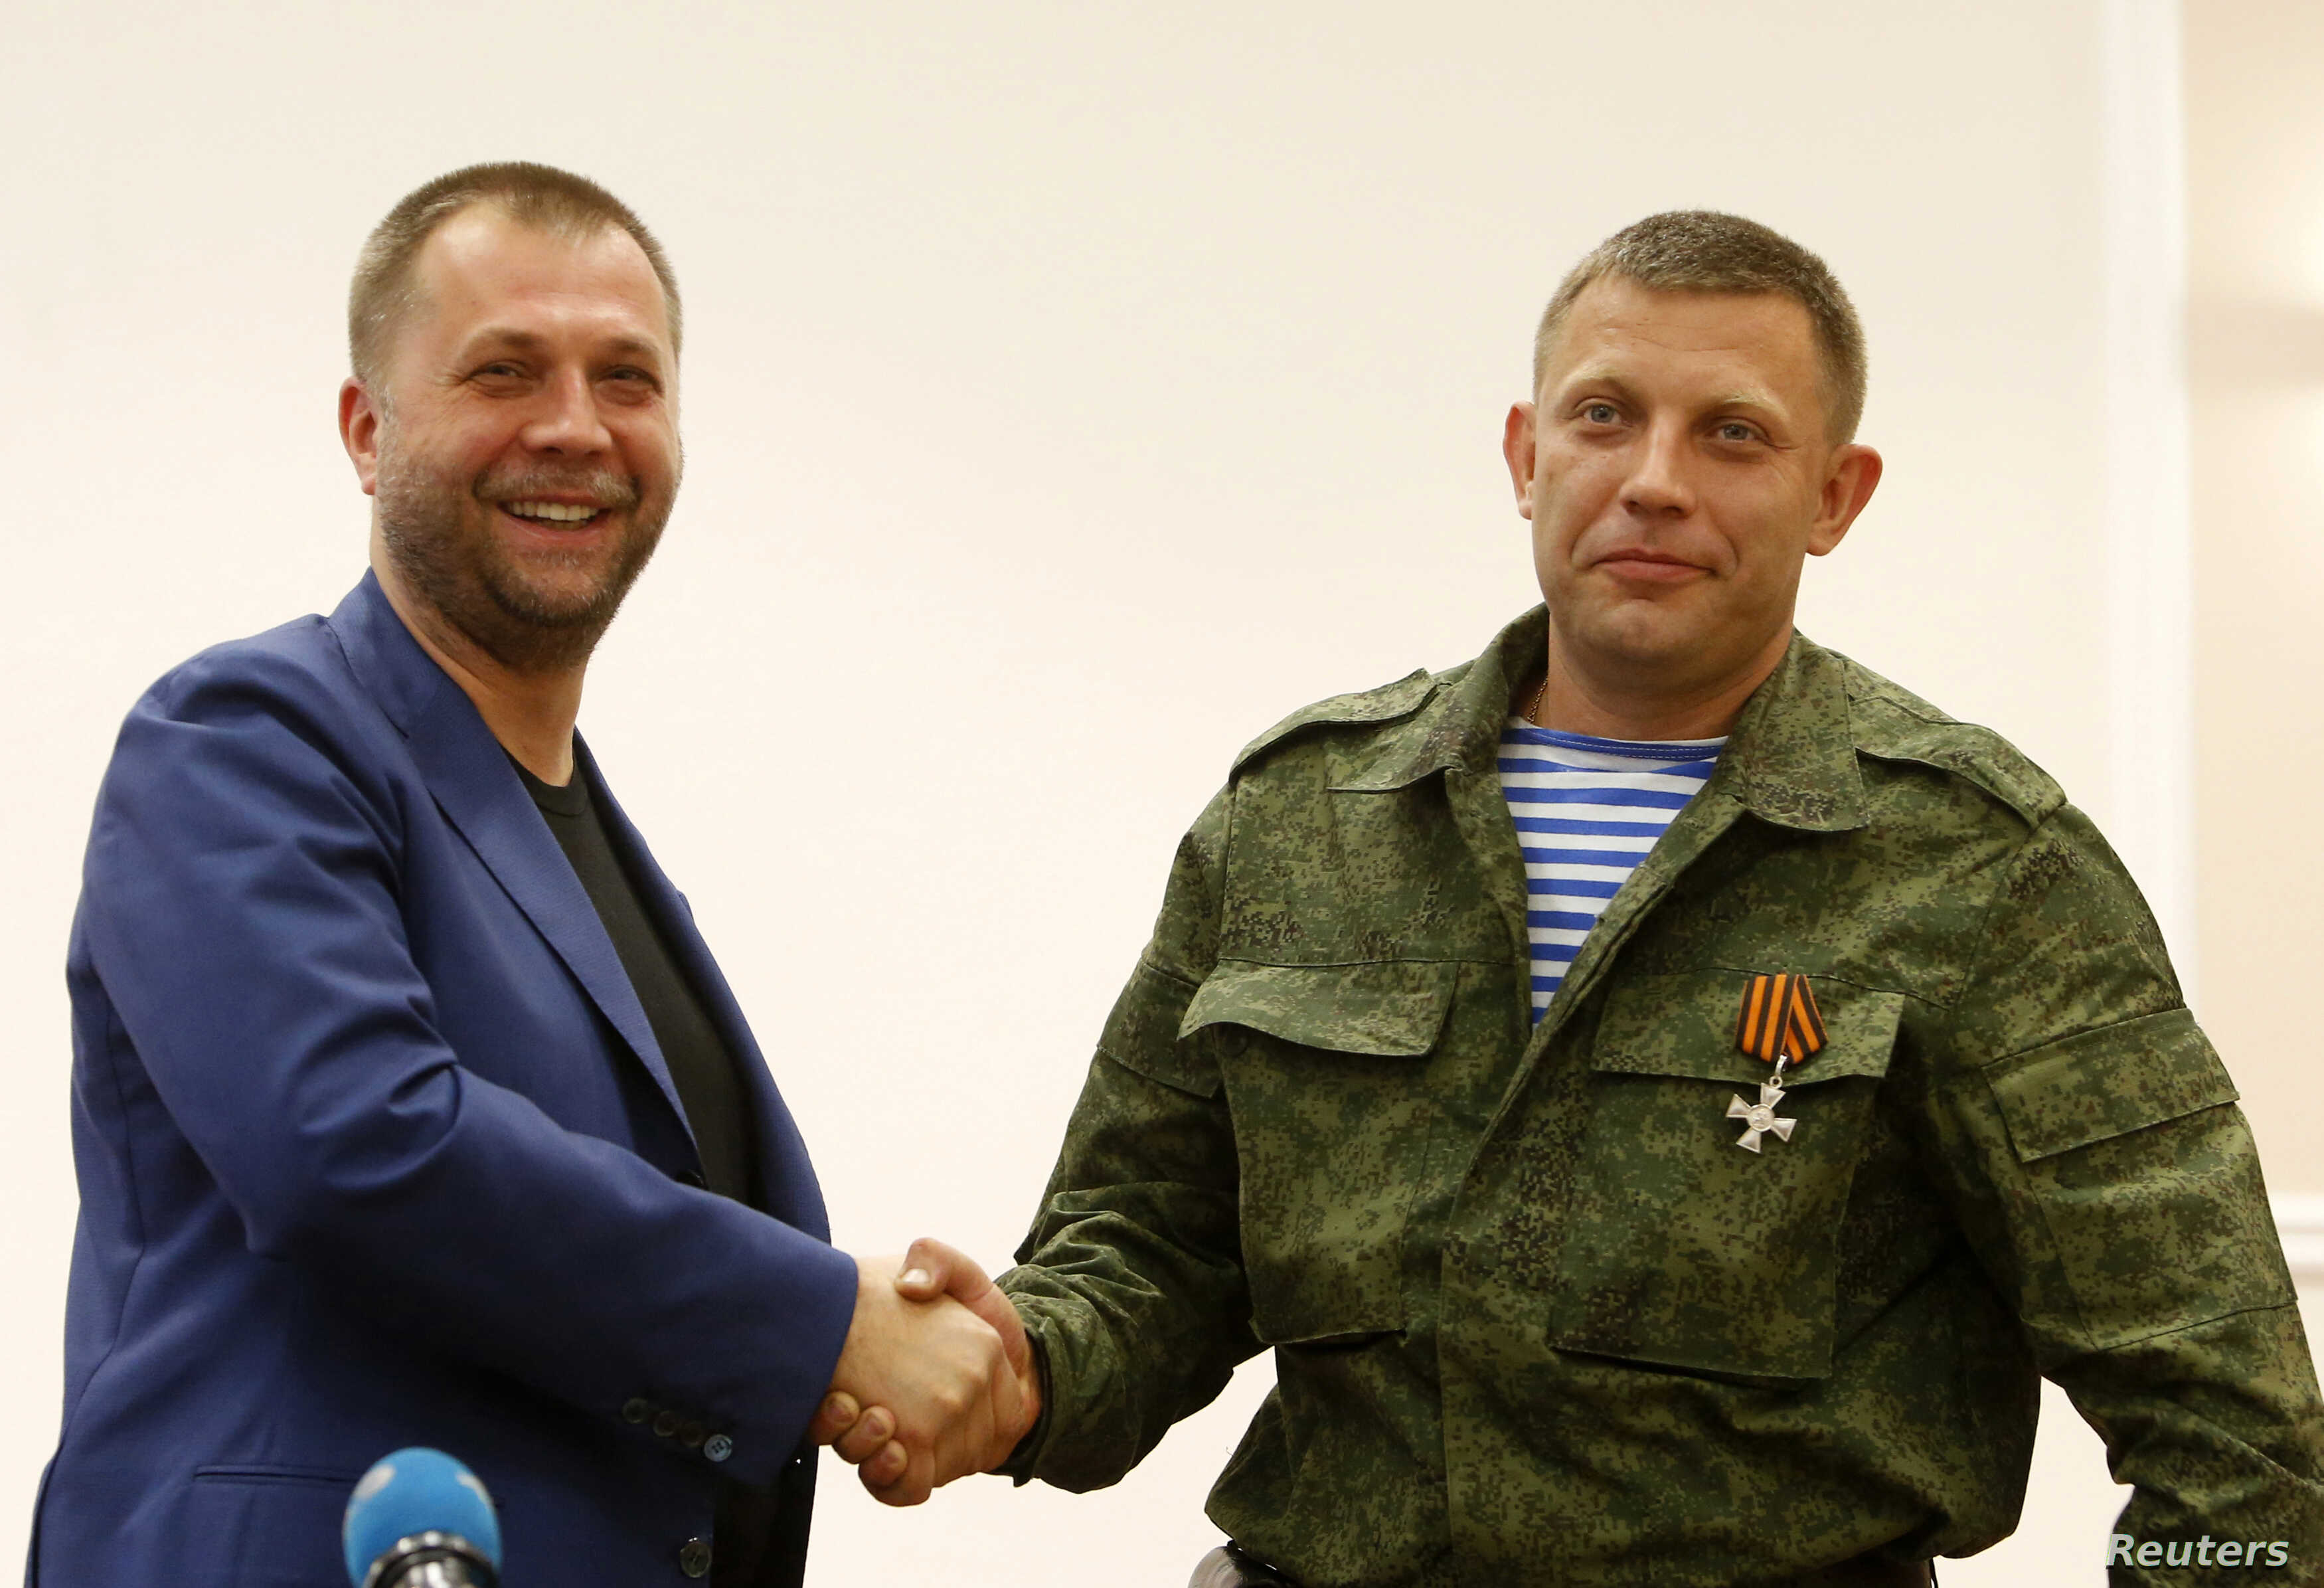 """Aleksander Borodai (L), leader of the self-proclaimed """"Donetsk People's Republic"""" shakes hands with rebel leader Aleksander Zakharchenko, during their news conference in Donetsk, August 7, 2014."""